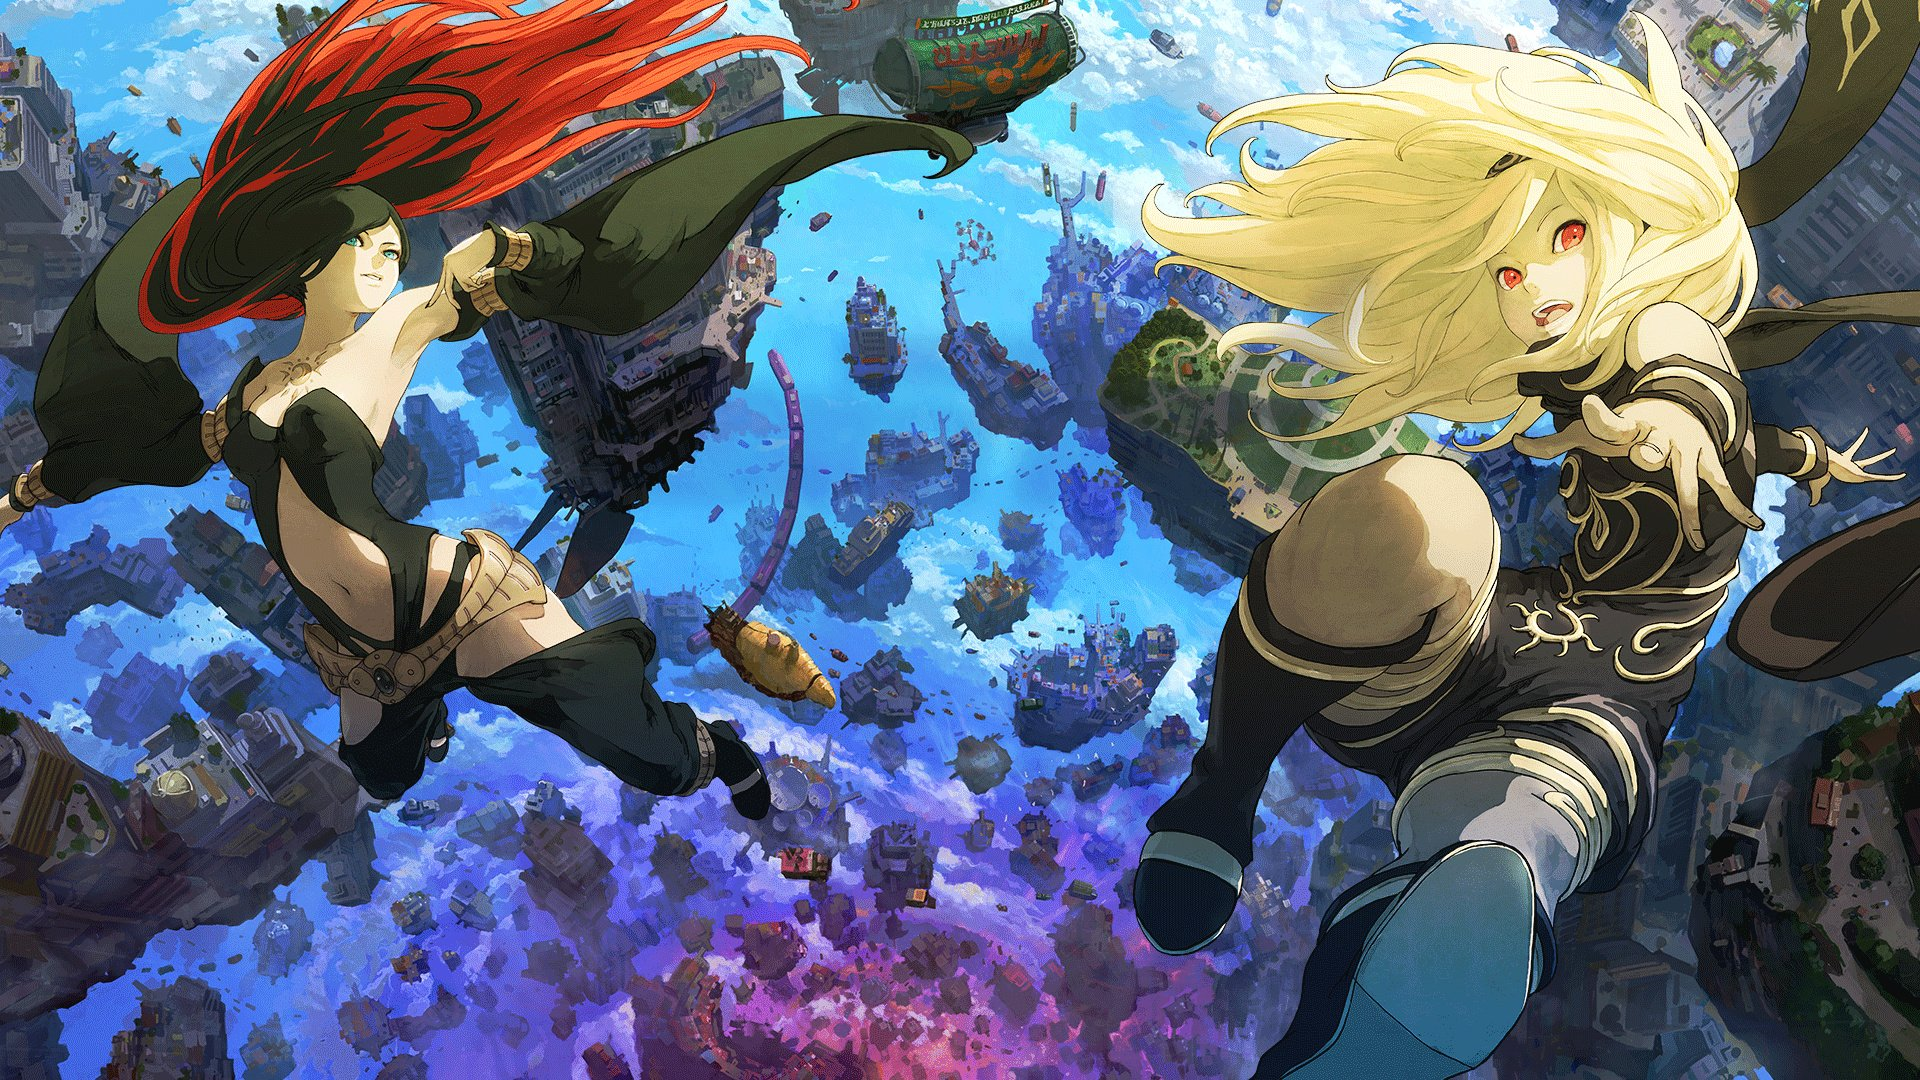 PlayStation Now Update Adds Gravity Rush 2, LittleBigPlanet 3, and More